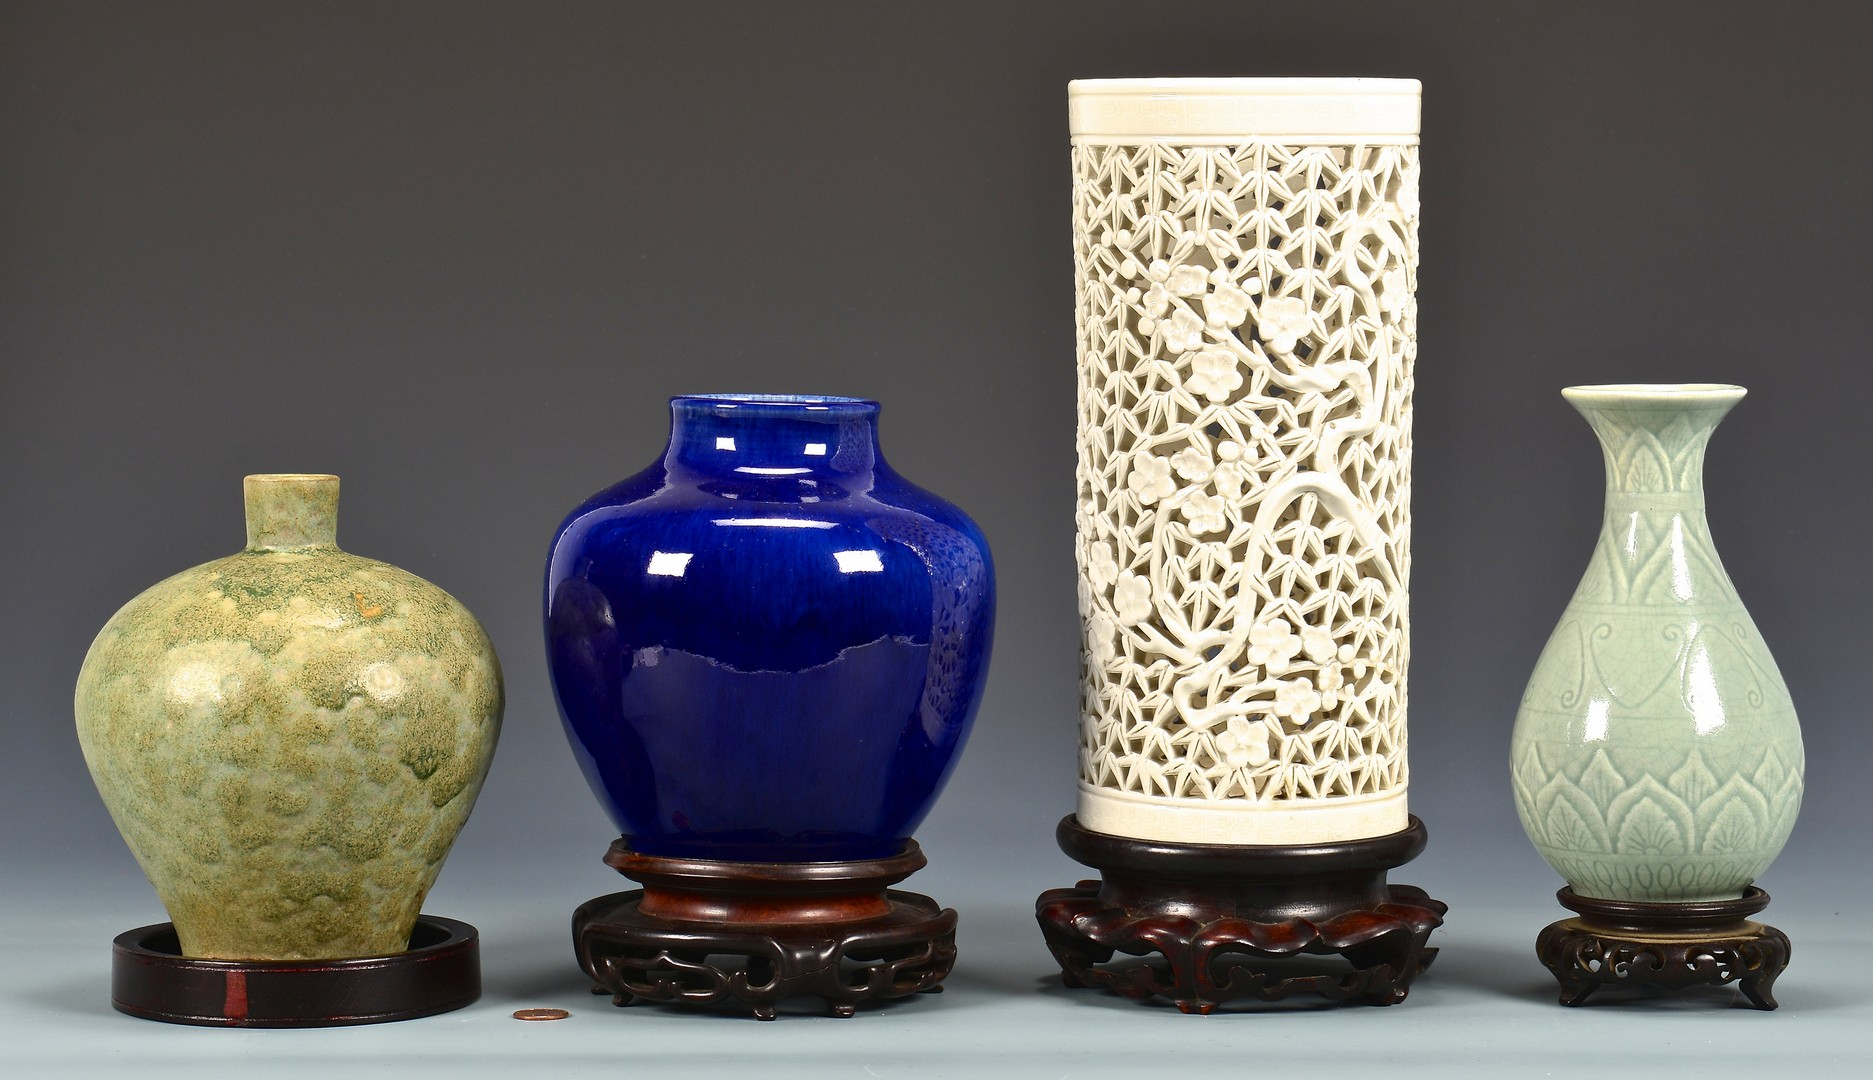 Lot 4010138: Group of 4 Asian Ceramic Items